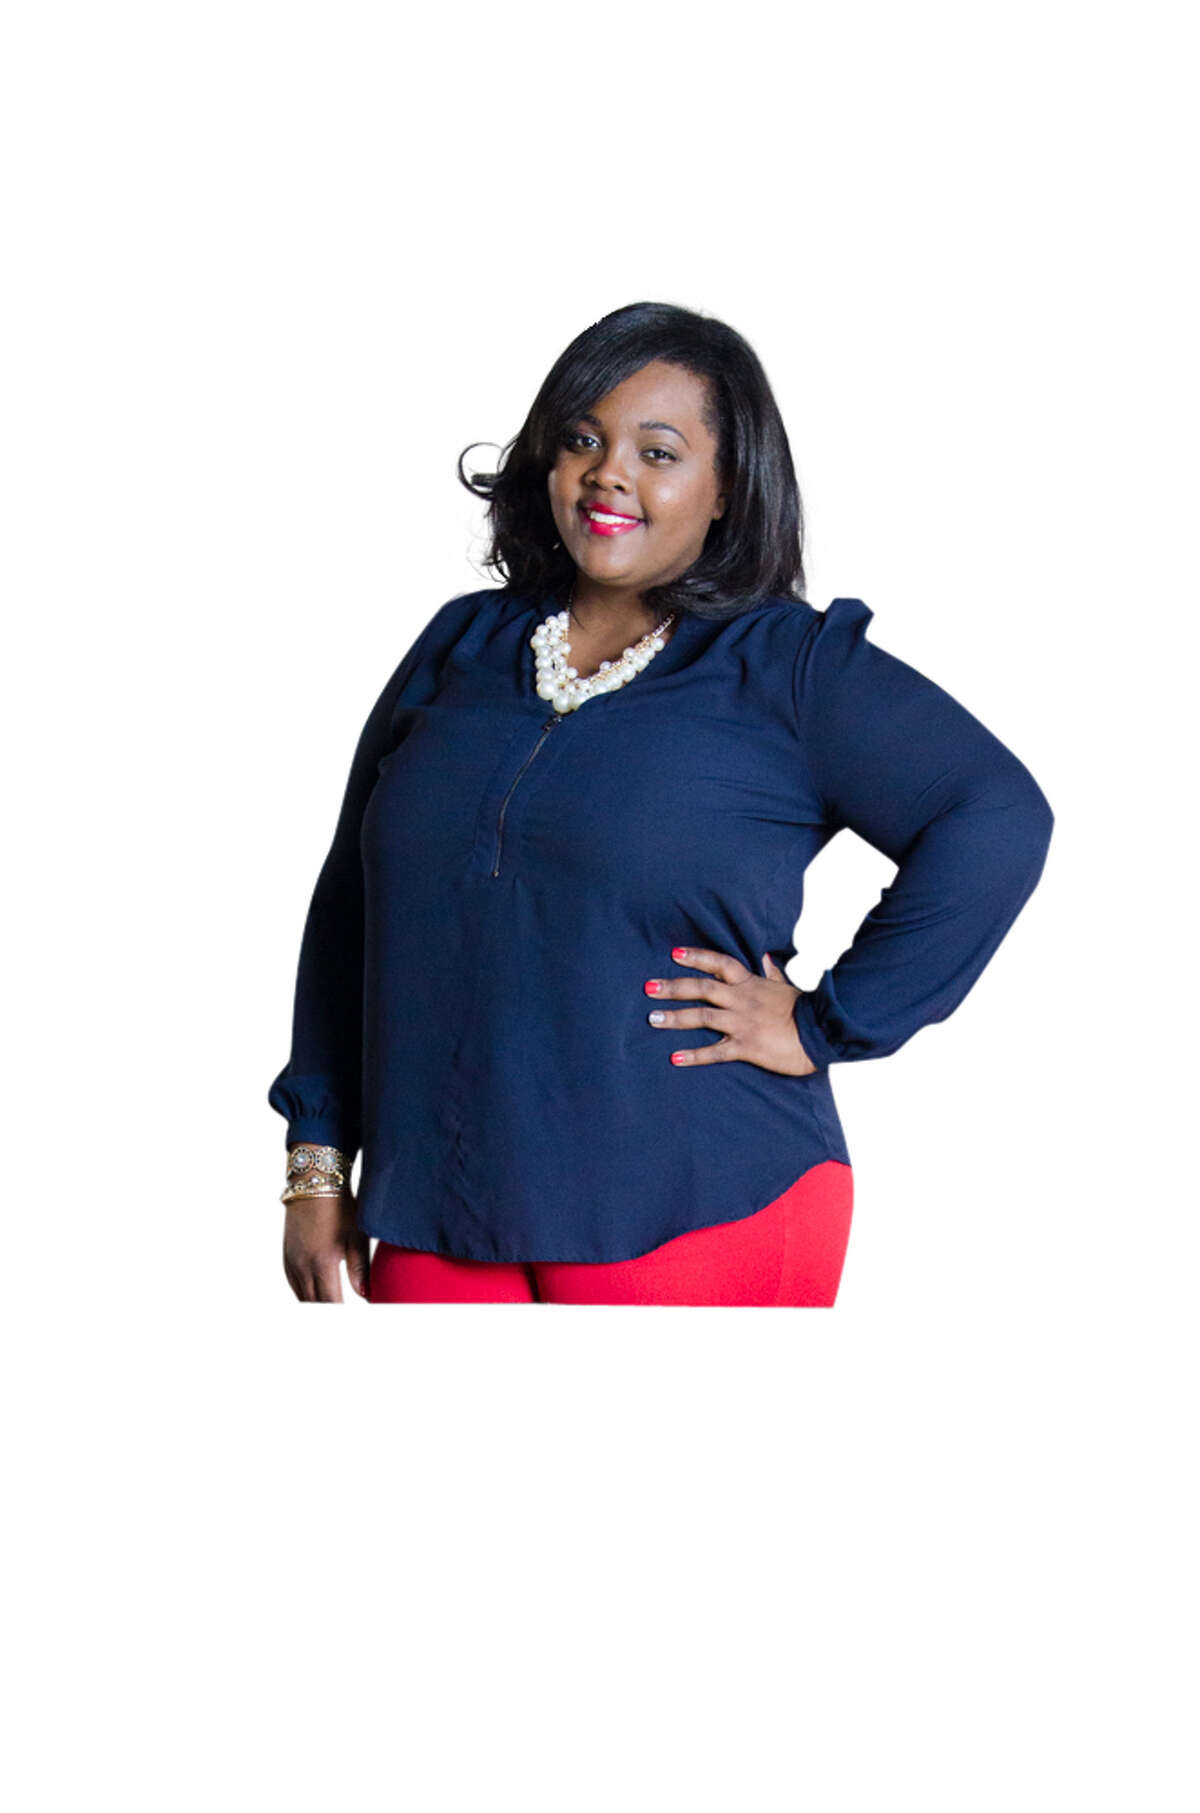 Kierra Jones, who used to work as a customer account manager for General Mills, made the leap to a full-time empowerment and confidence coach, speaker and entrepreneur